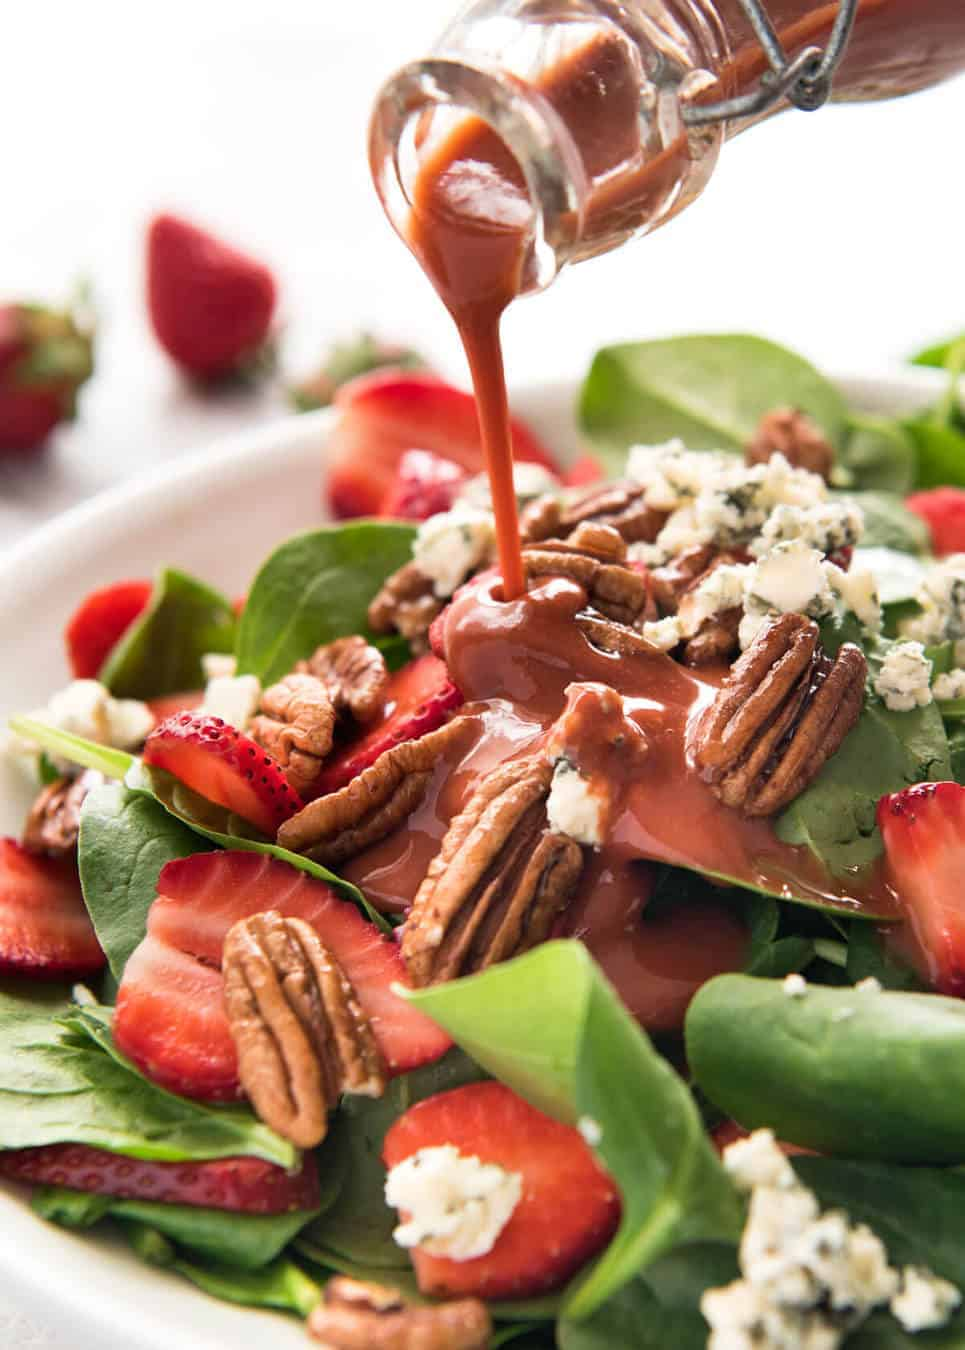 A stunning Chef recipe for a Strawberry Spinach Salad. Spinach, fresh strawberries, blue cheese and candied pecans with a Strawberry Balsamic Dressing. www.recipetineats.com